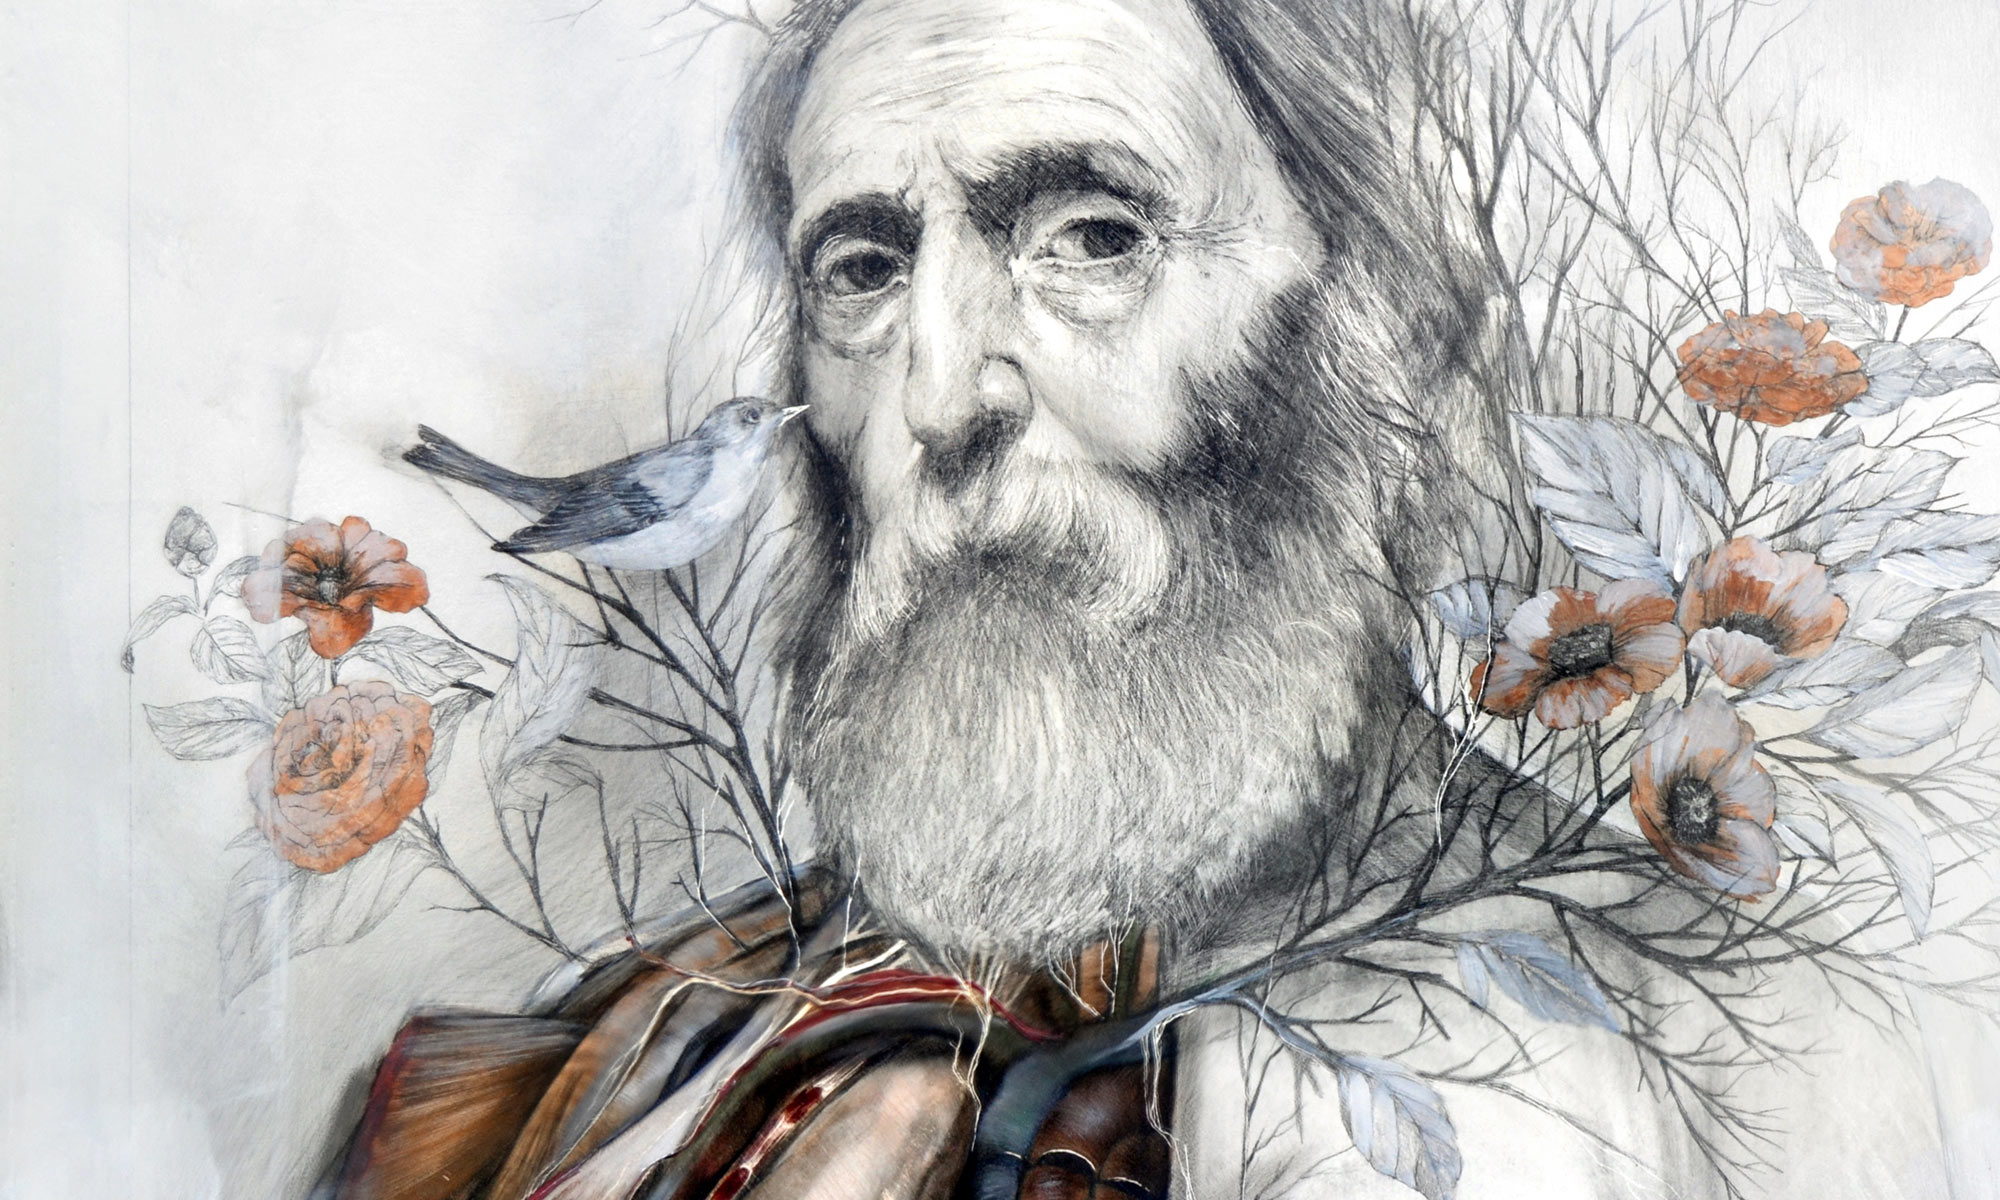 Dissected Splendor: Nunzio Paci's Visionary Anatomy Paintings